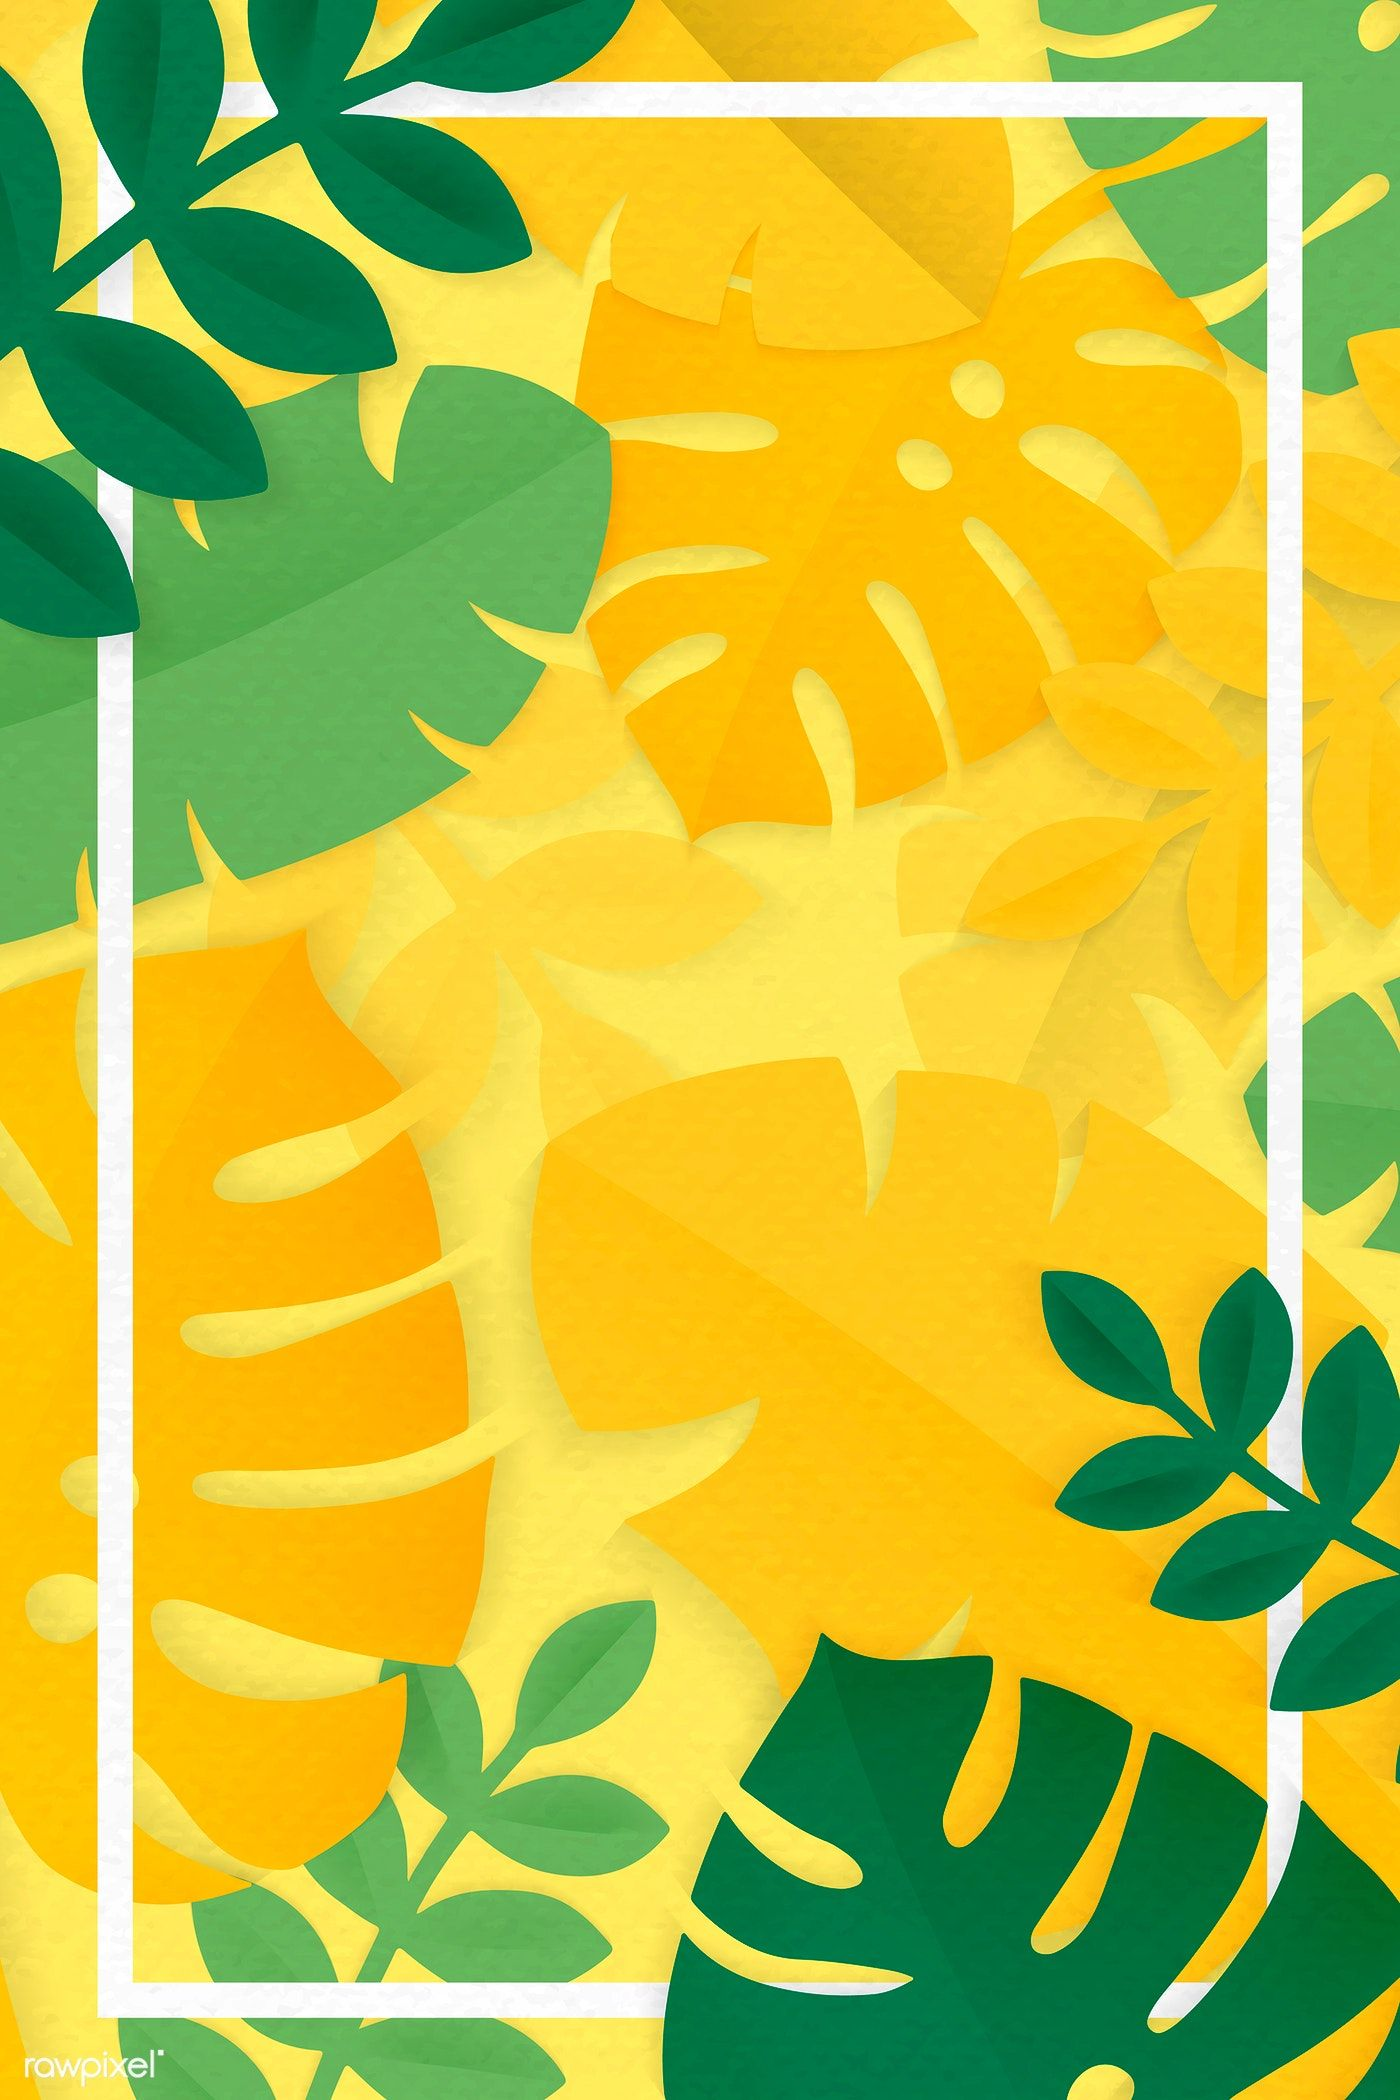 Download Premium Illustration Of White Rectangle Frame On Yellow Tropical Tropical Leaves Background Patterns Yellow Artwork Watercolor tropical plants leaves wall art canvas posters and prints minimalist painting wall new vintage pillow case yellow green leaf tropical palm ceriman watercolor home decorative cushion. pinterest